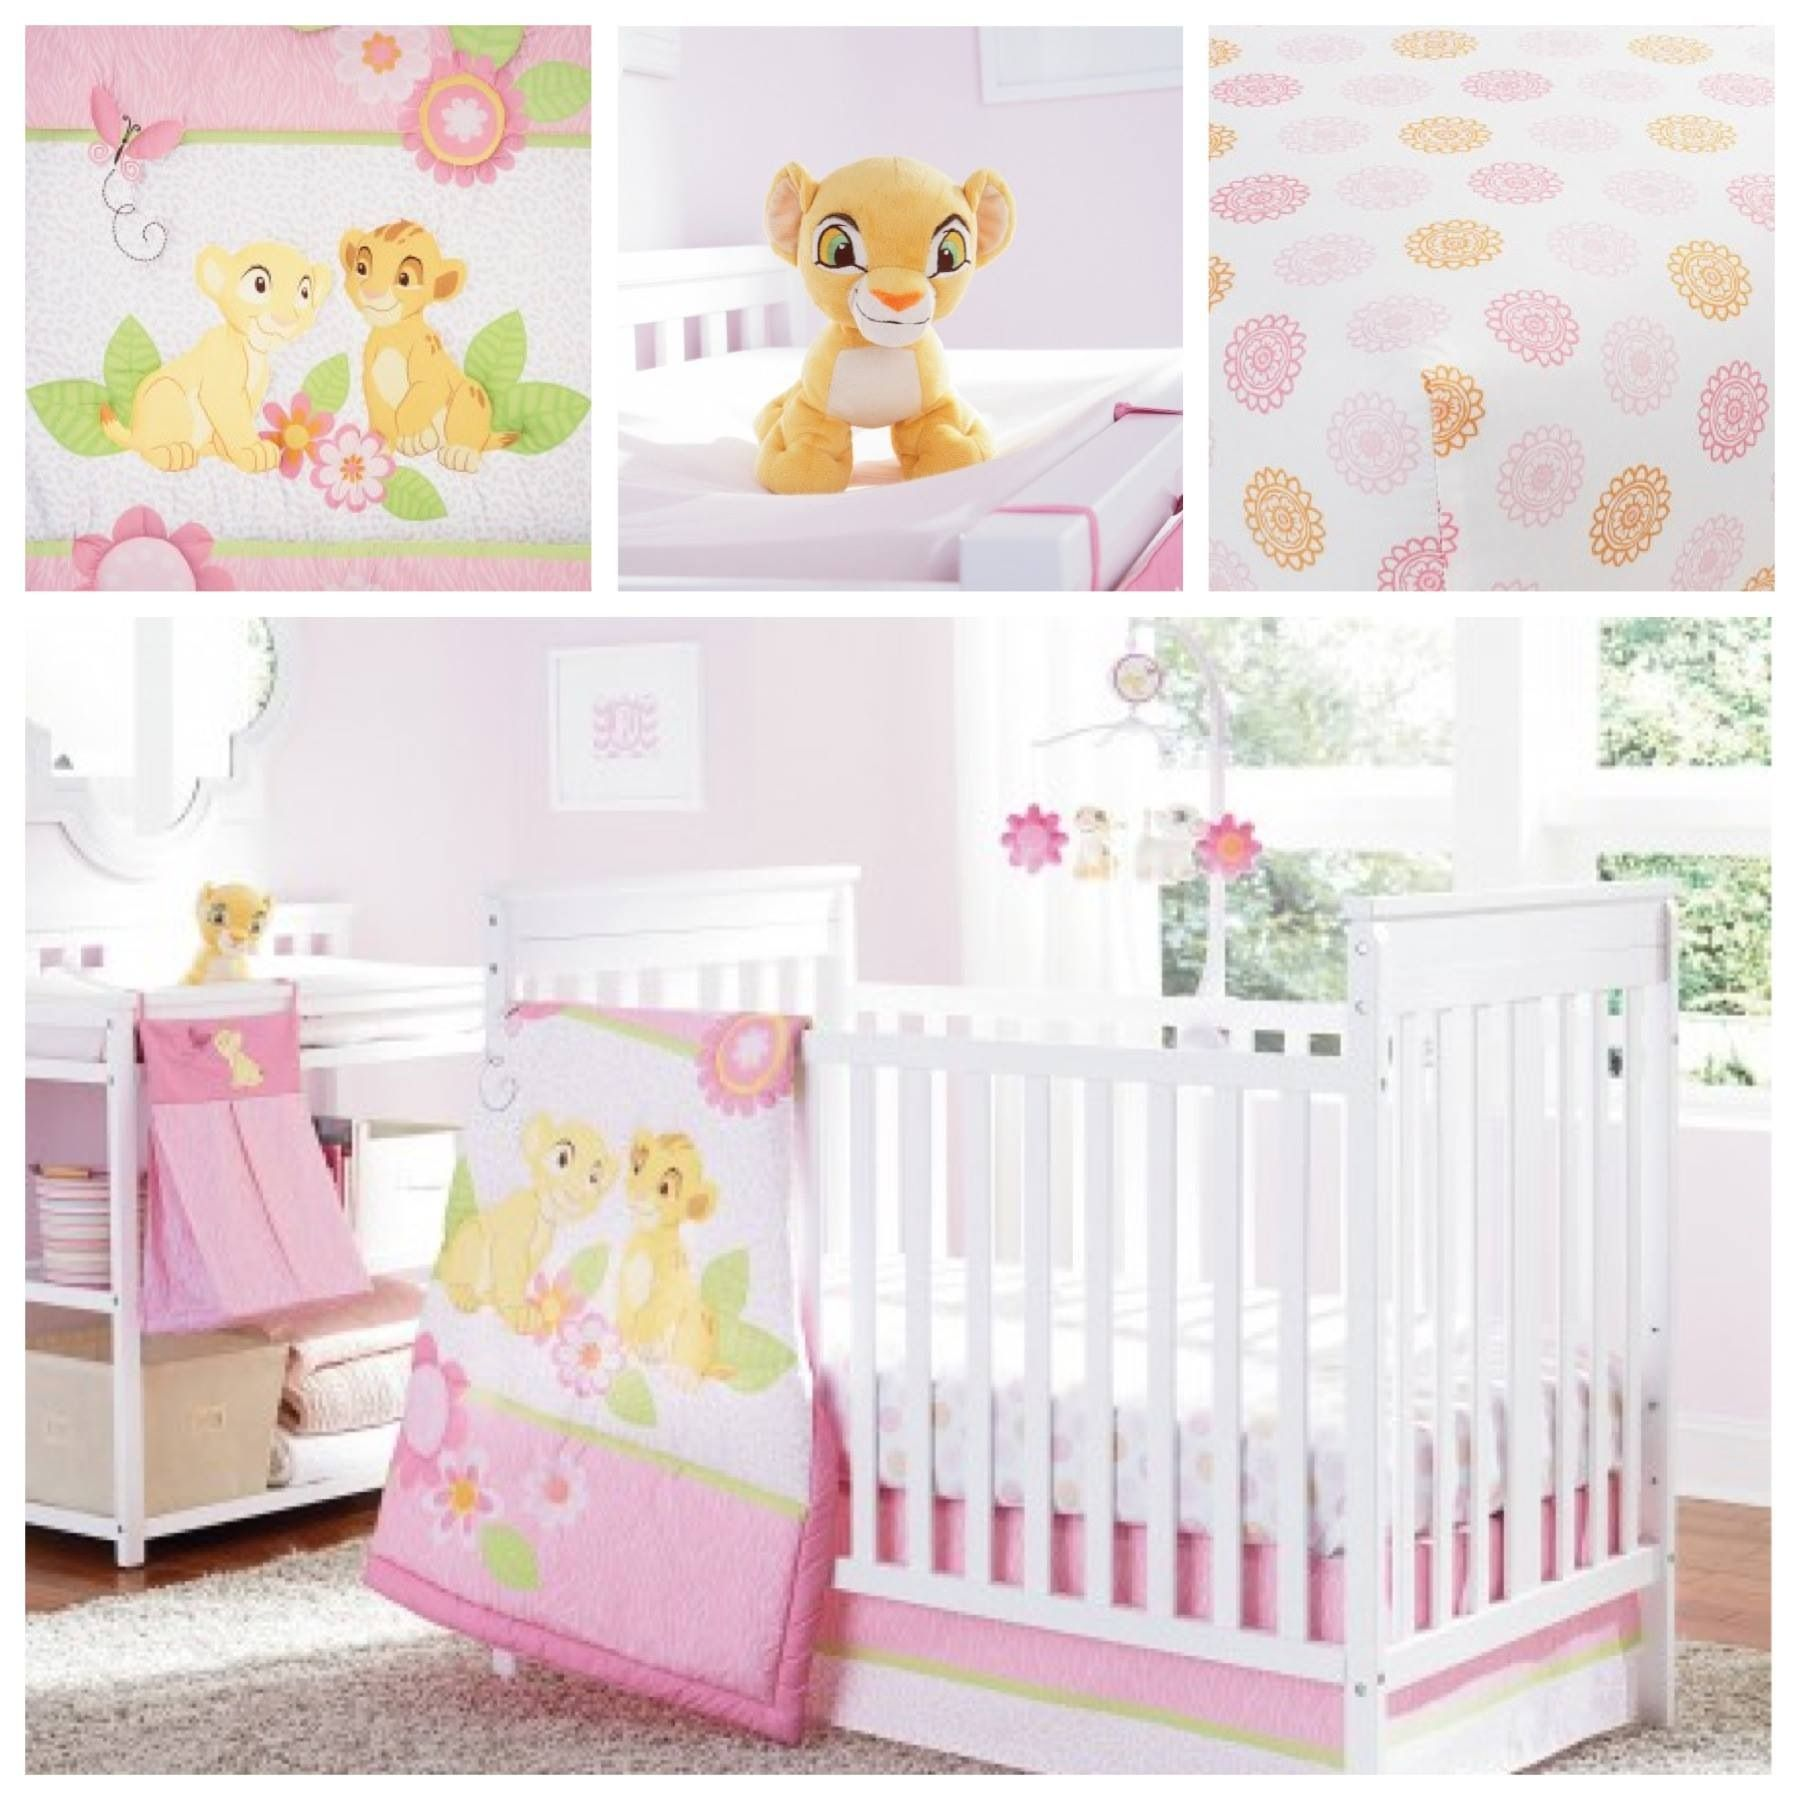 Lion King Decor For Baby S Room Available At Toys R Us This Is Def Our Baby S Room If Its A Girl Kri Baby Room Themes Baby Nursery Themes Disney Baby Rooms